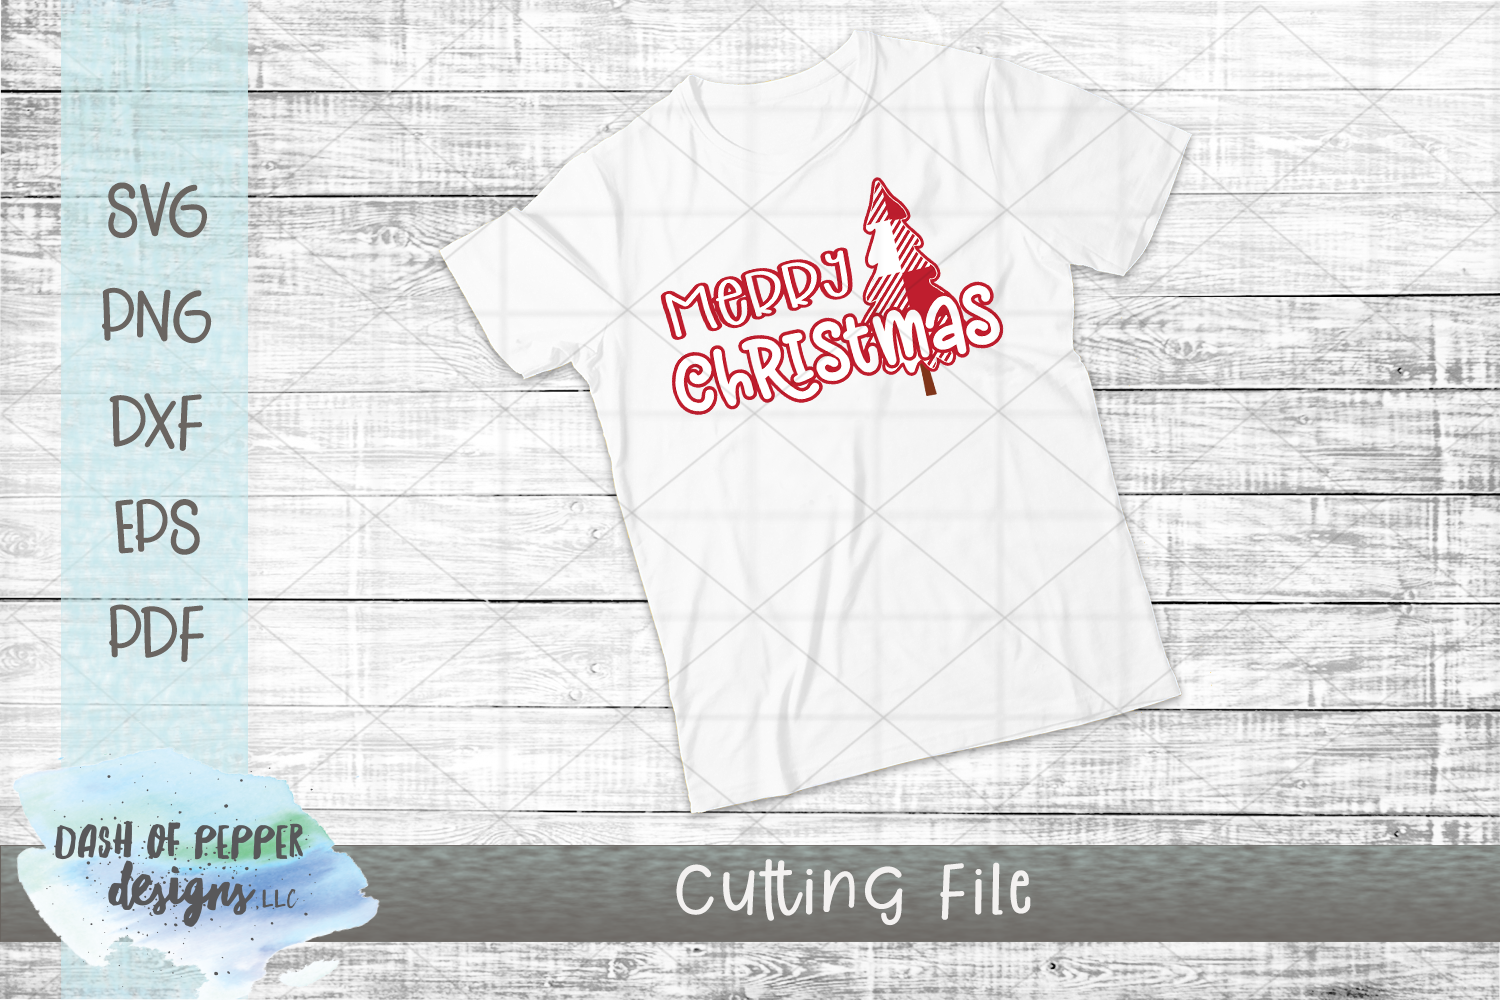 Merry Christmas SVG - A Christmas SVG with Plaid Tree example image 2